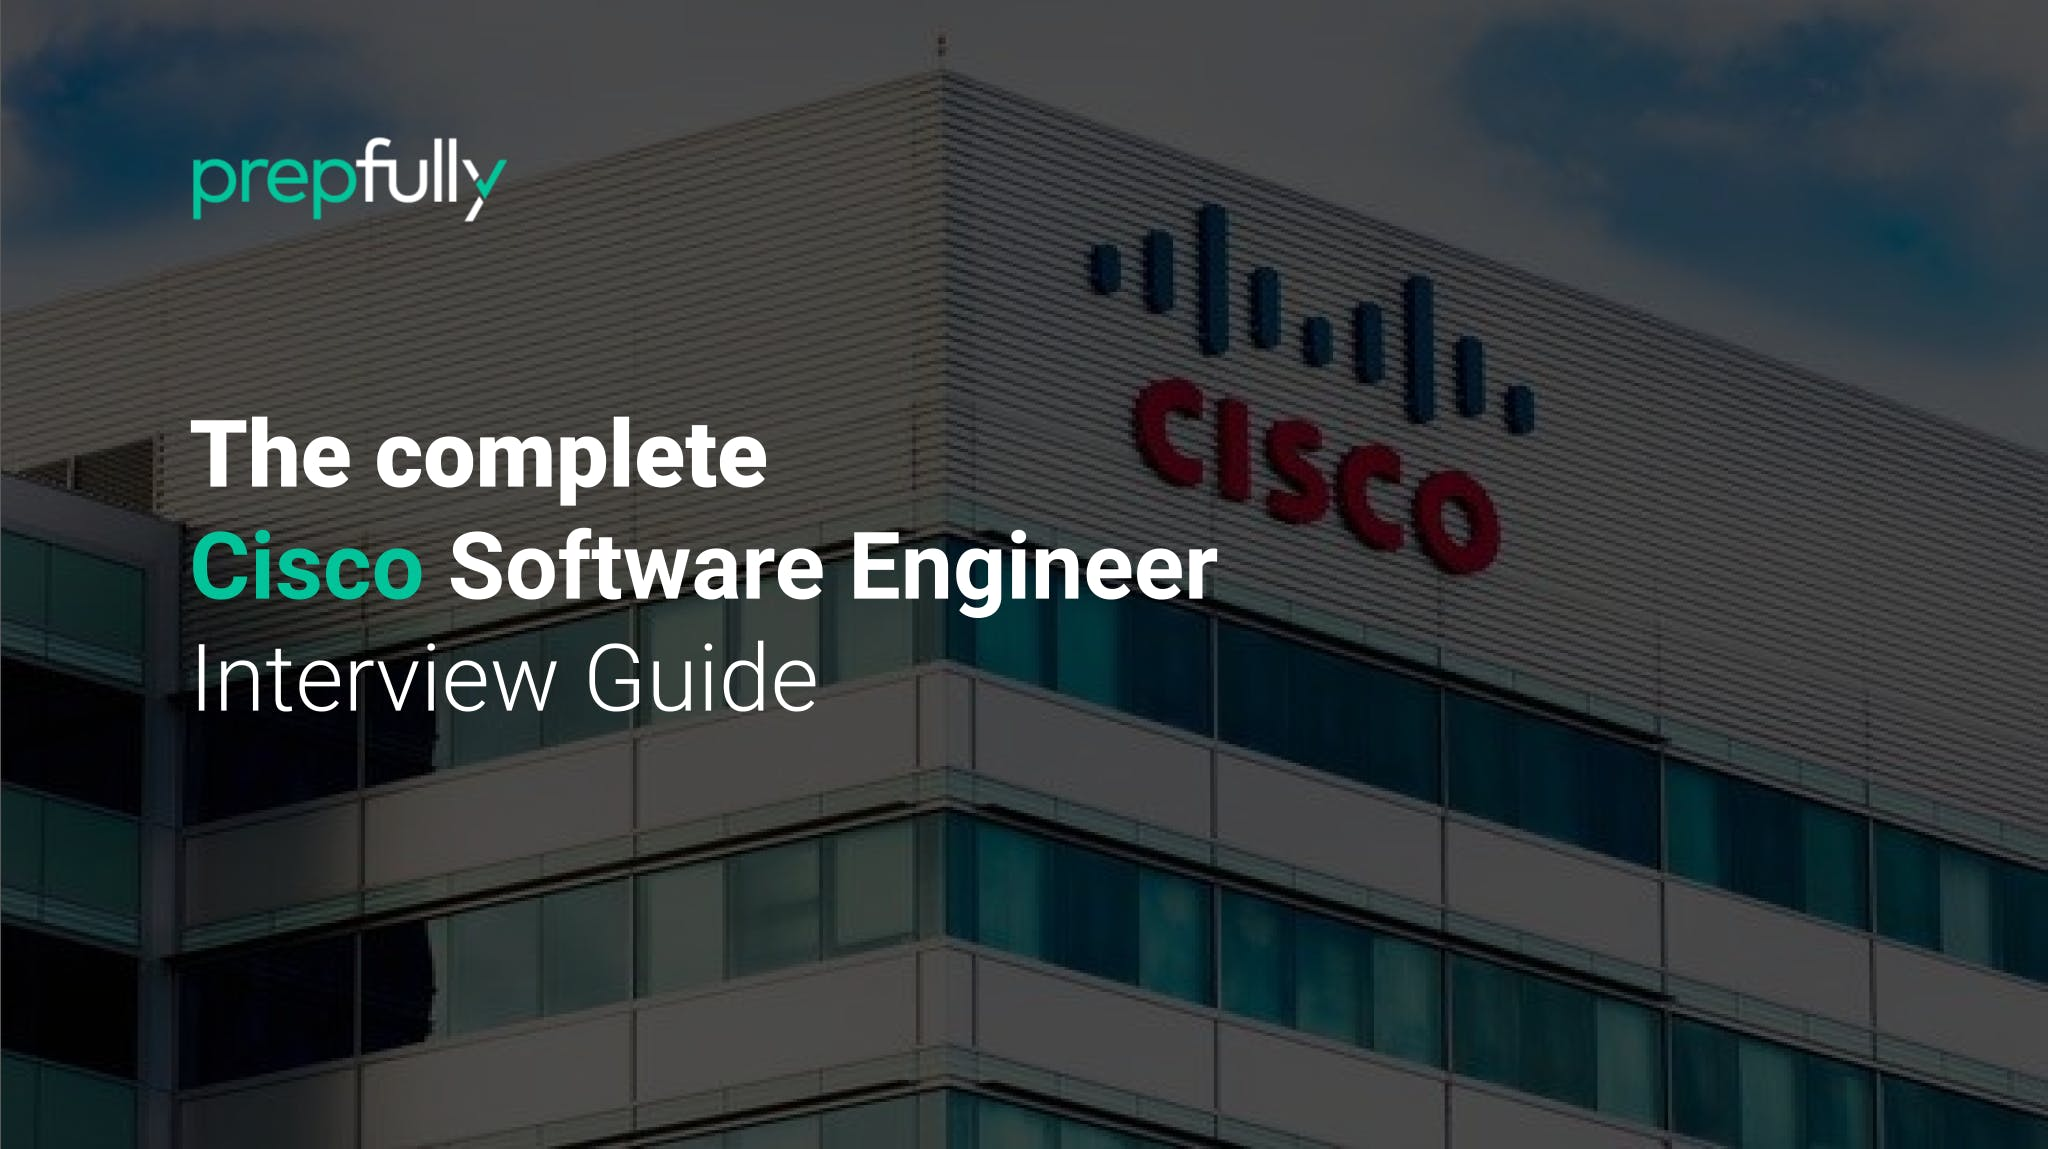 Interview guide for Cisco Software Engineer